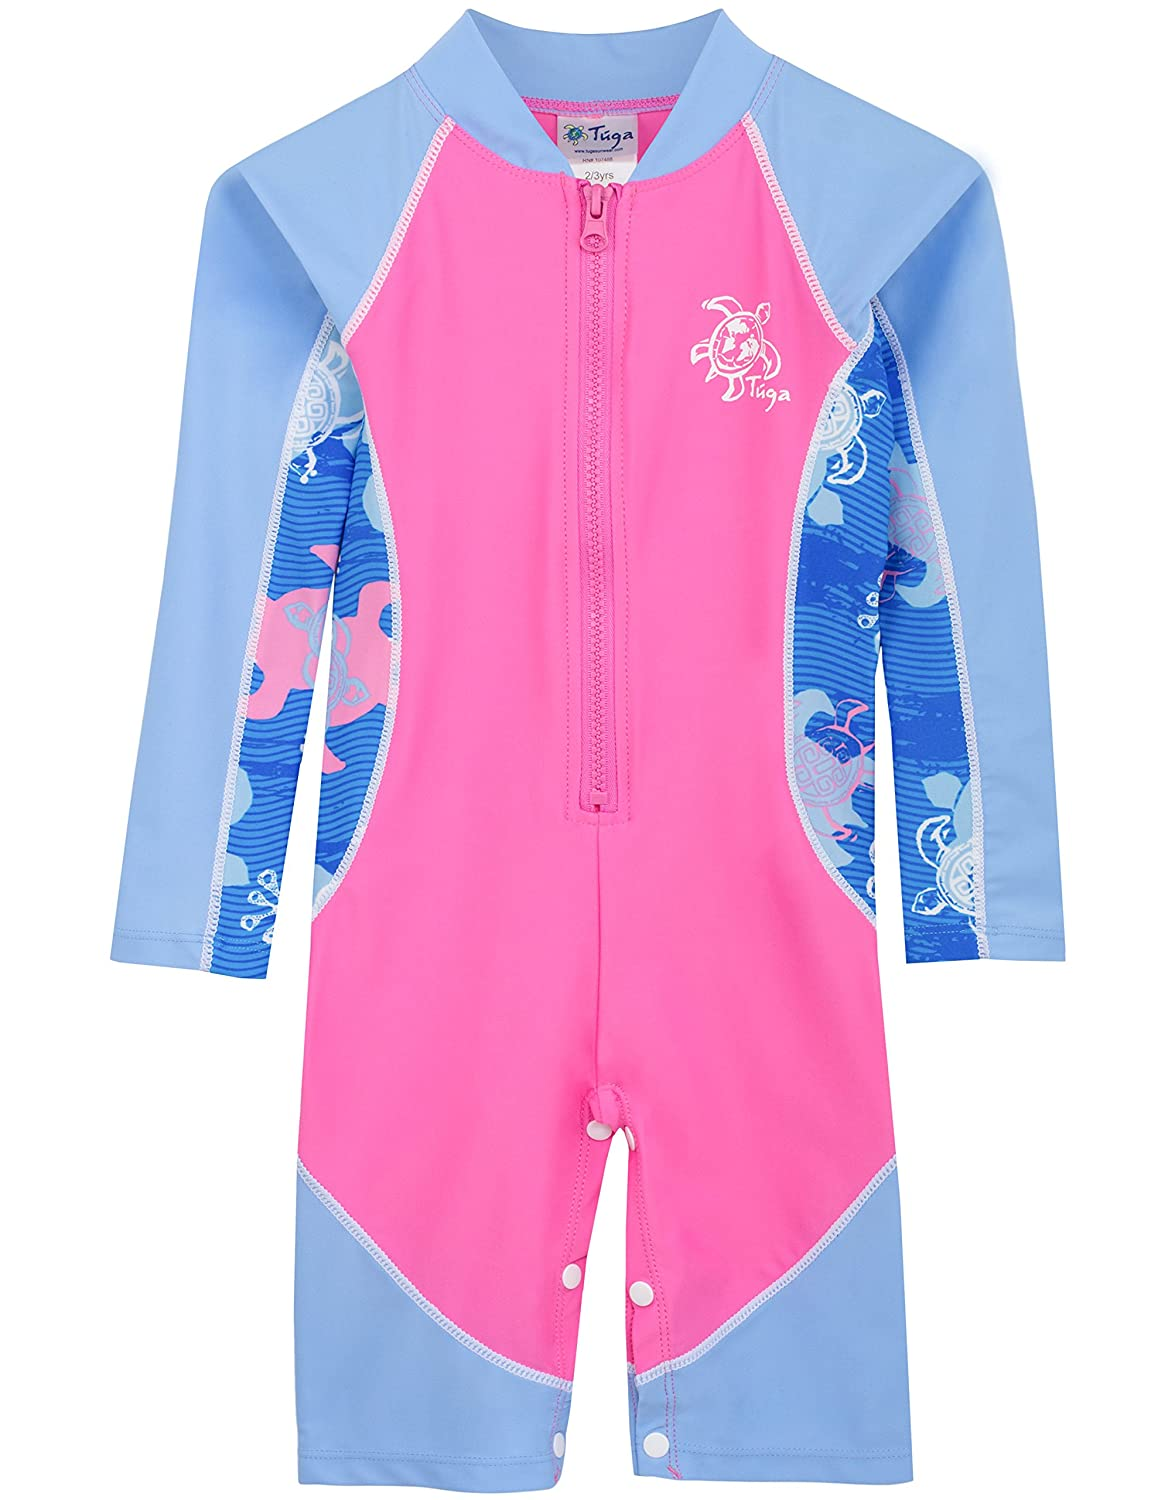 7 Years Sun Protection UPF 50 Tuga Girls Long Sleeve One Piece Swimsuit 3mos